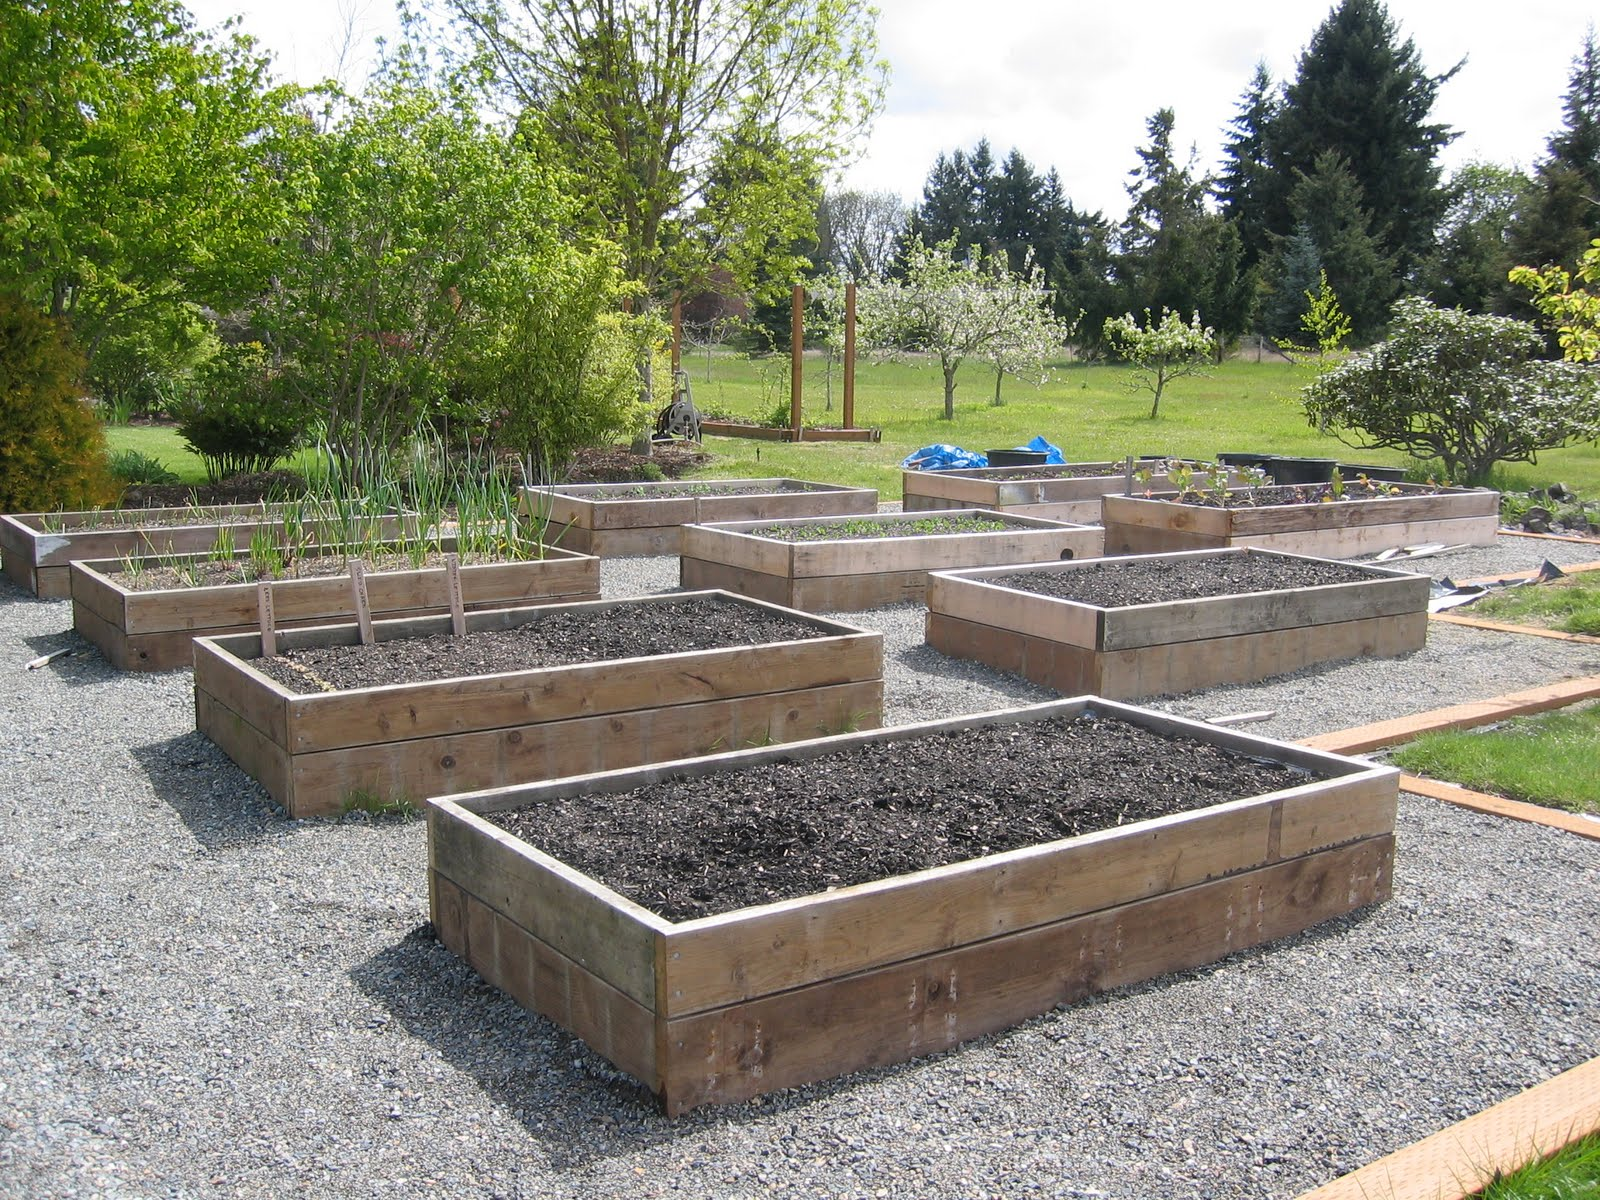 The tacoma kitchen garden journal raised vegetable beds for Raised bed garden designs plans